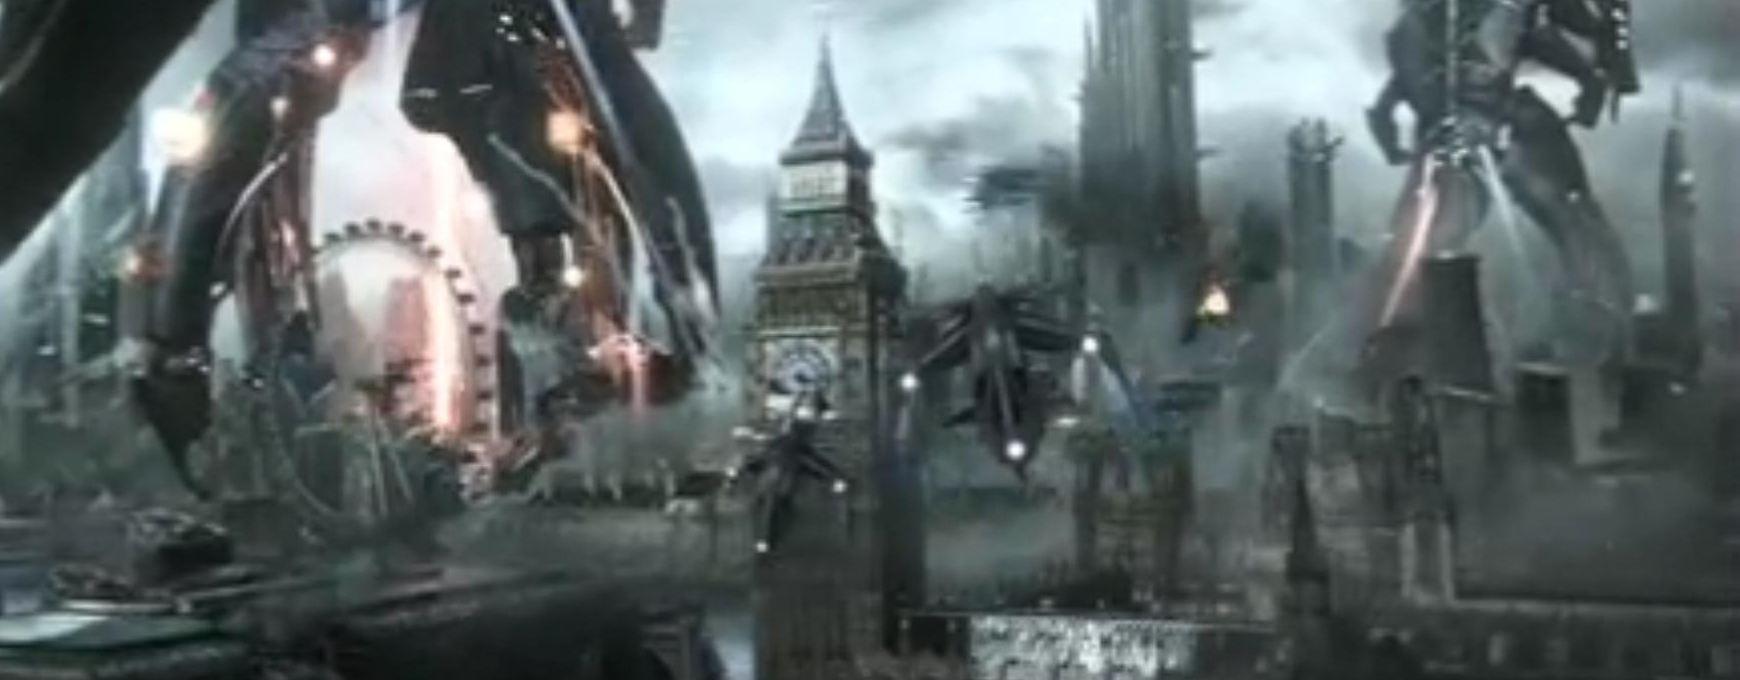 Reapers descend on London.